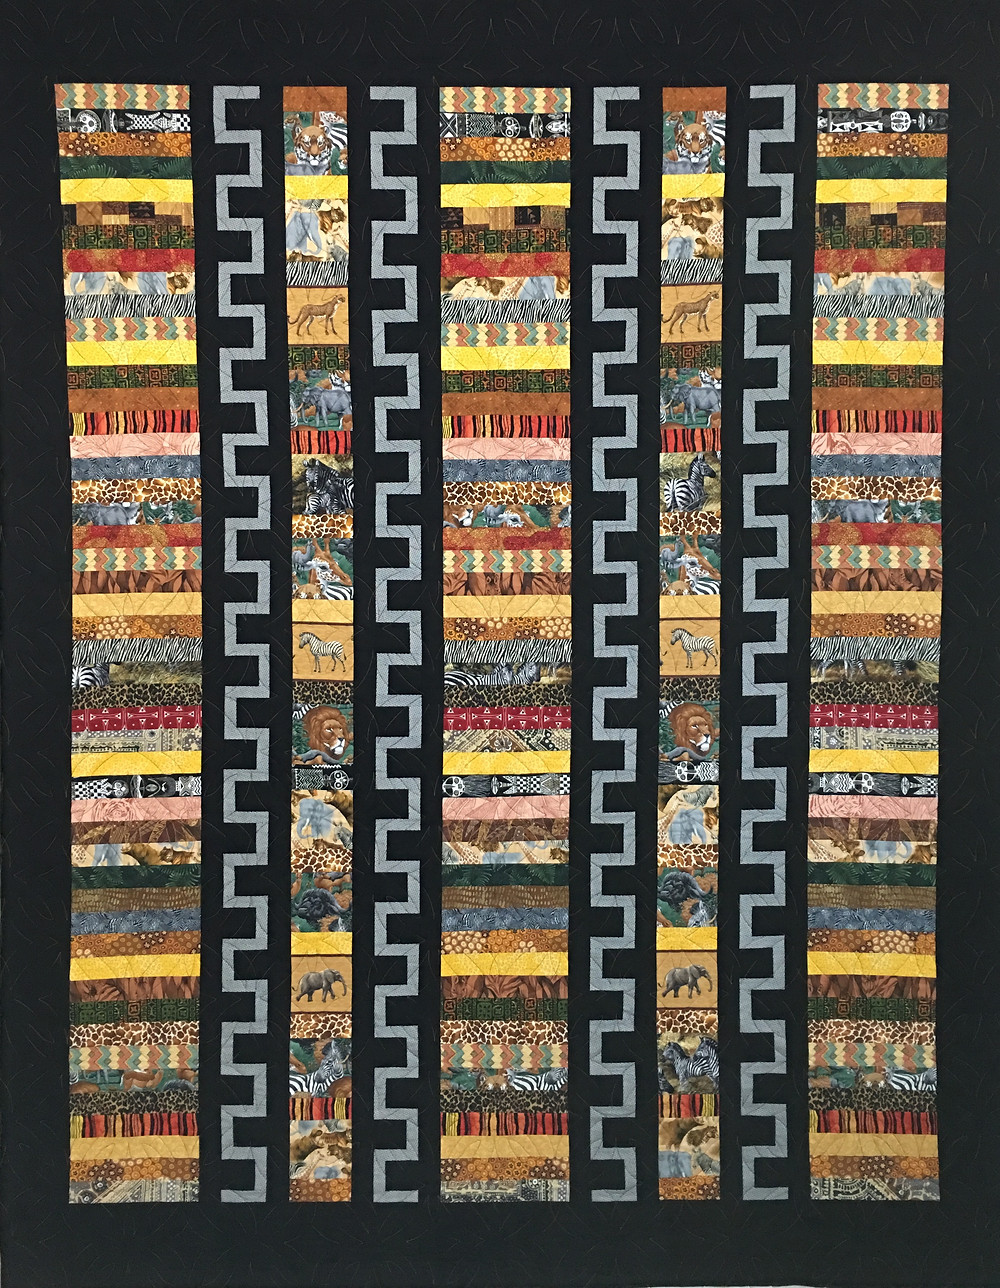 Out of Africa Quilt by Elon Webber